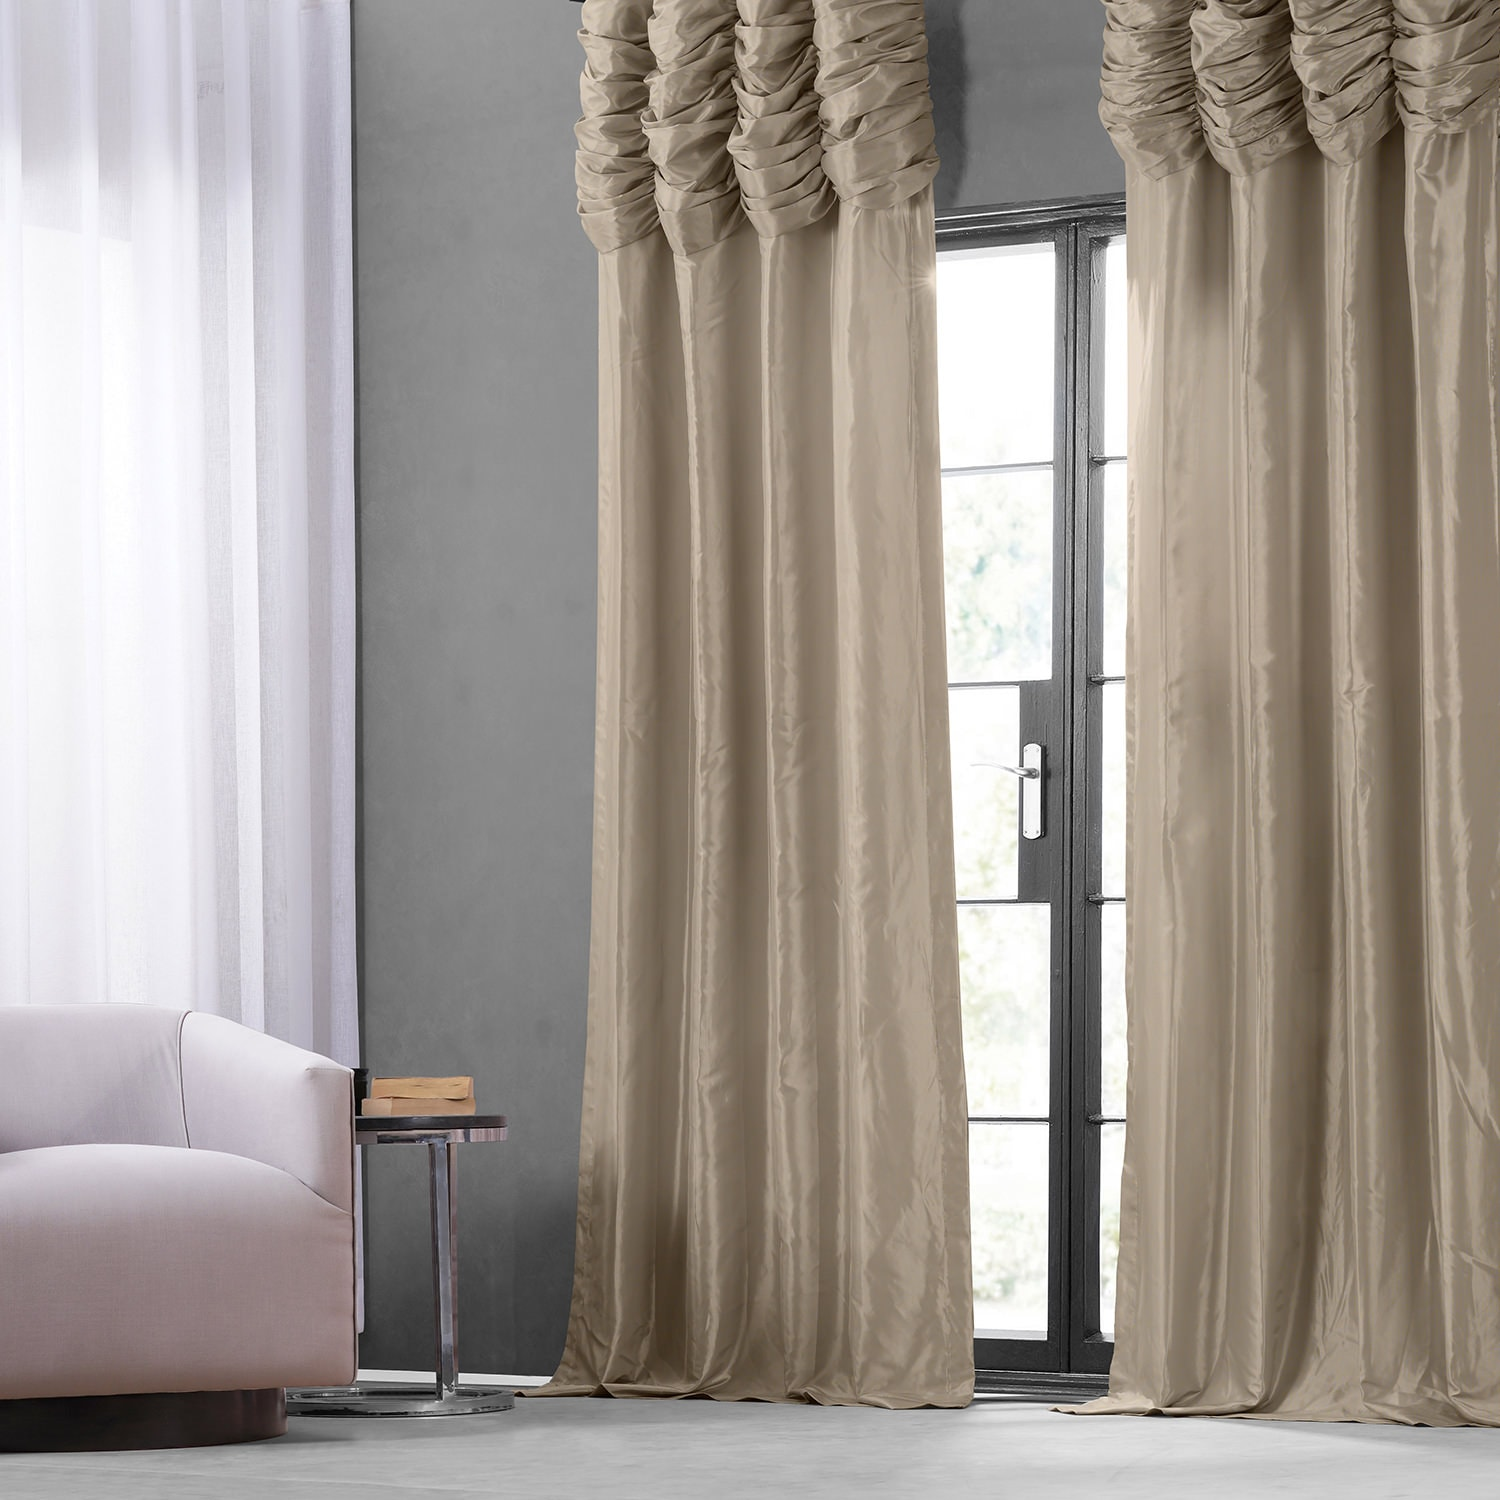 Curtain Deals Review Online Antique Beige Ruched Faux Solid Taffeta